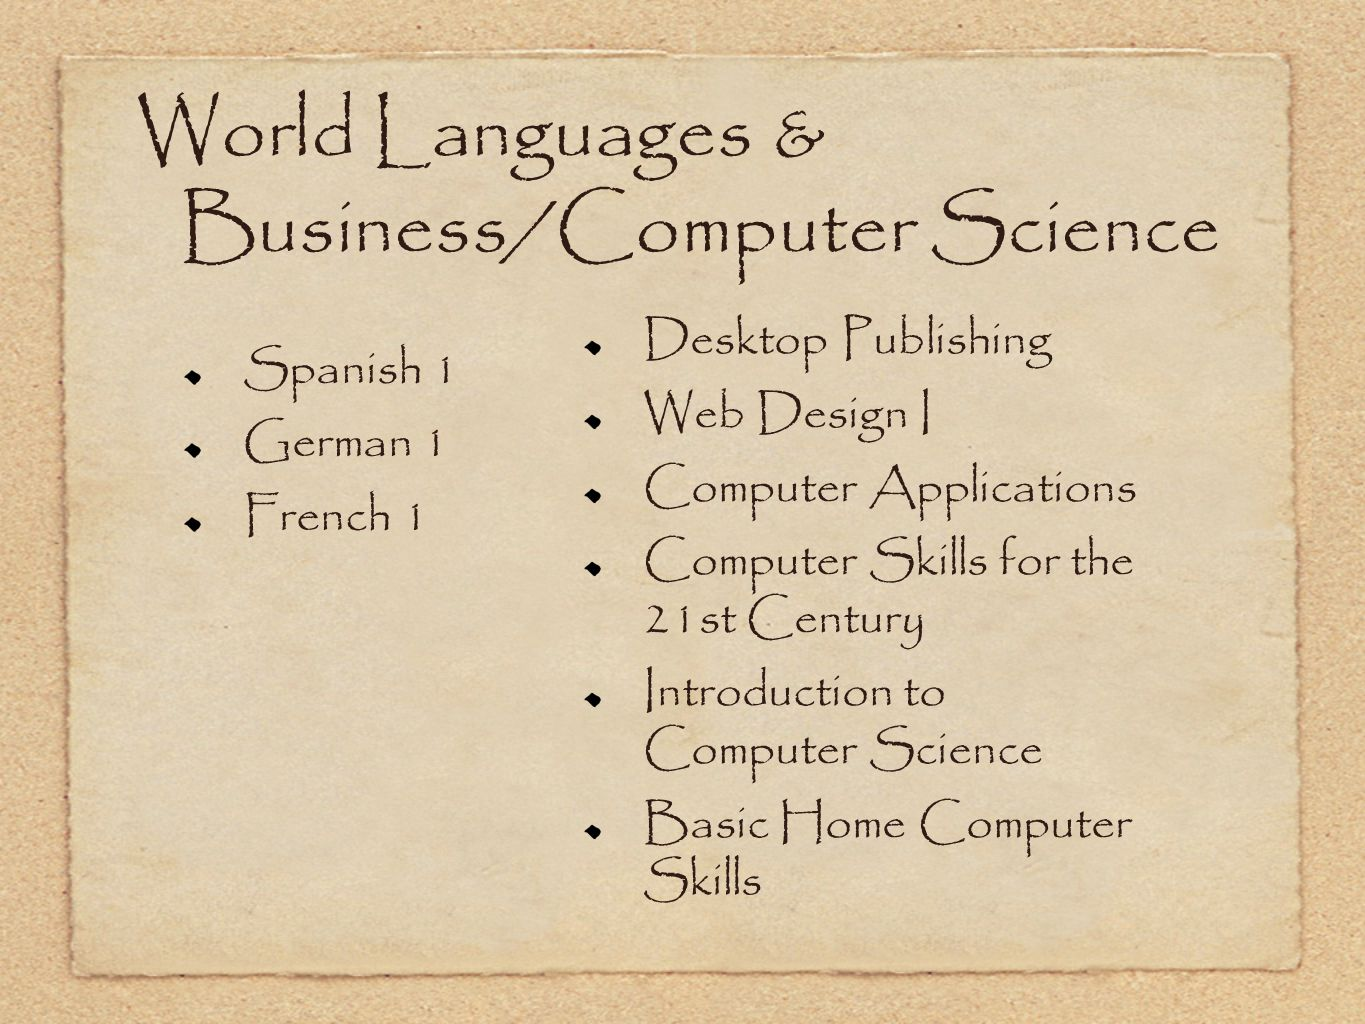 World Languages & Business/Computer Science Spanish 1 German 1 French 1 Desktop Publishing Web Design I Computer Applications Computer Skills for the